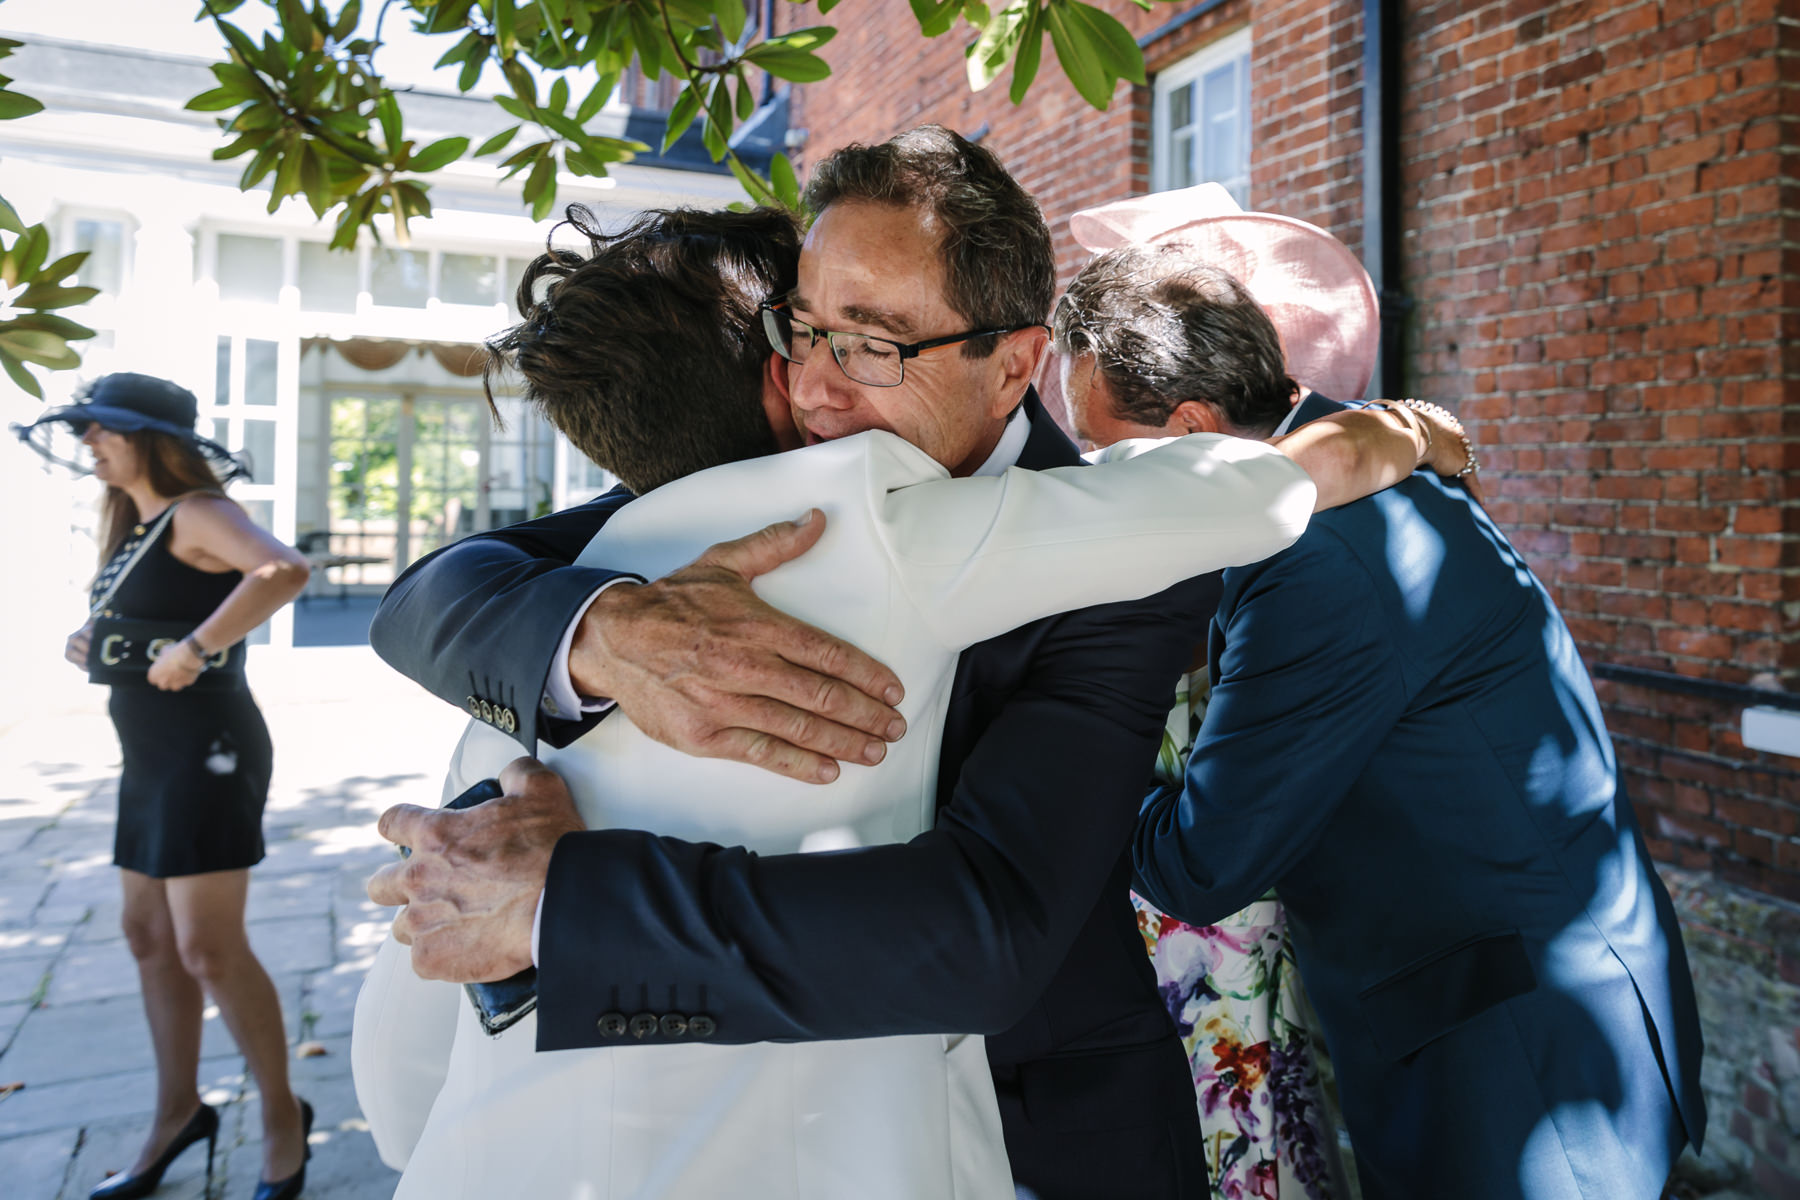 father of the bride embrace emotional moment natural authentic documentary wedding photo bride groom couple beaverbrook surrey hills leatherhead register office wedding photographer